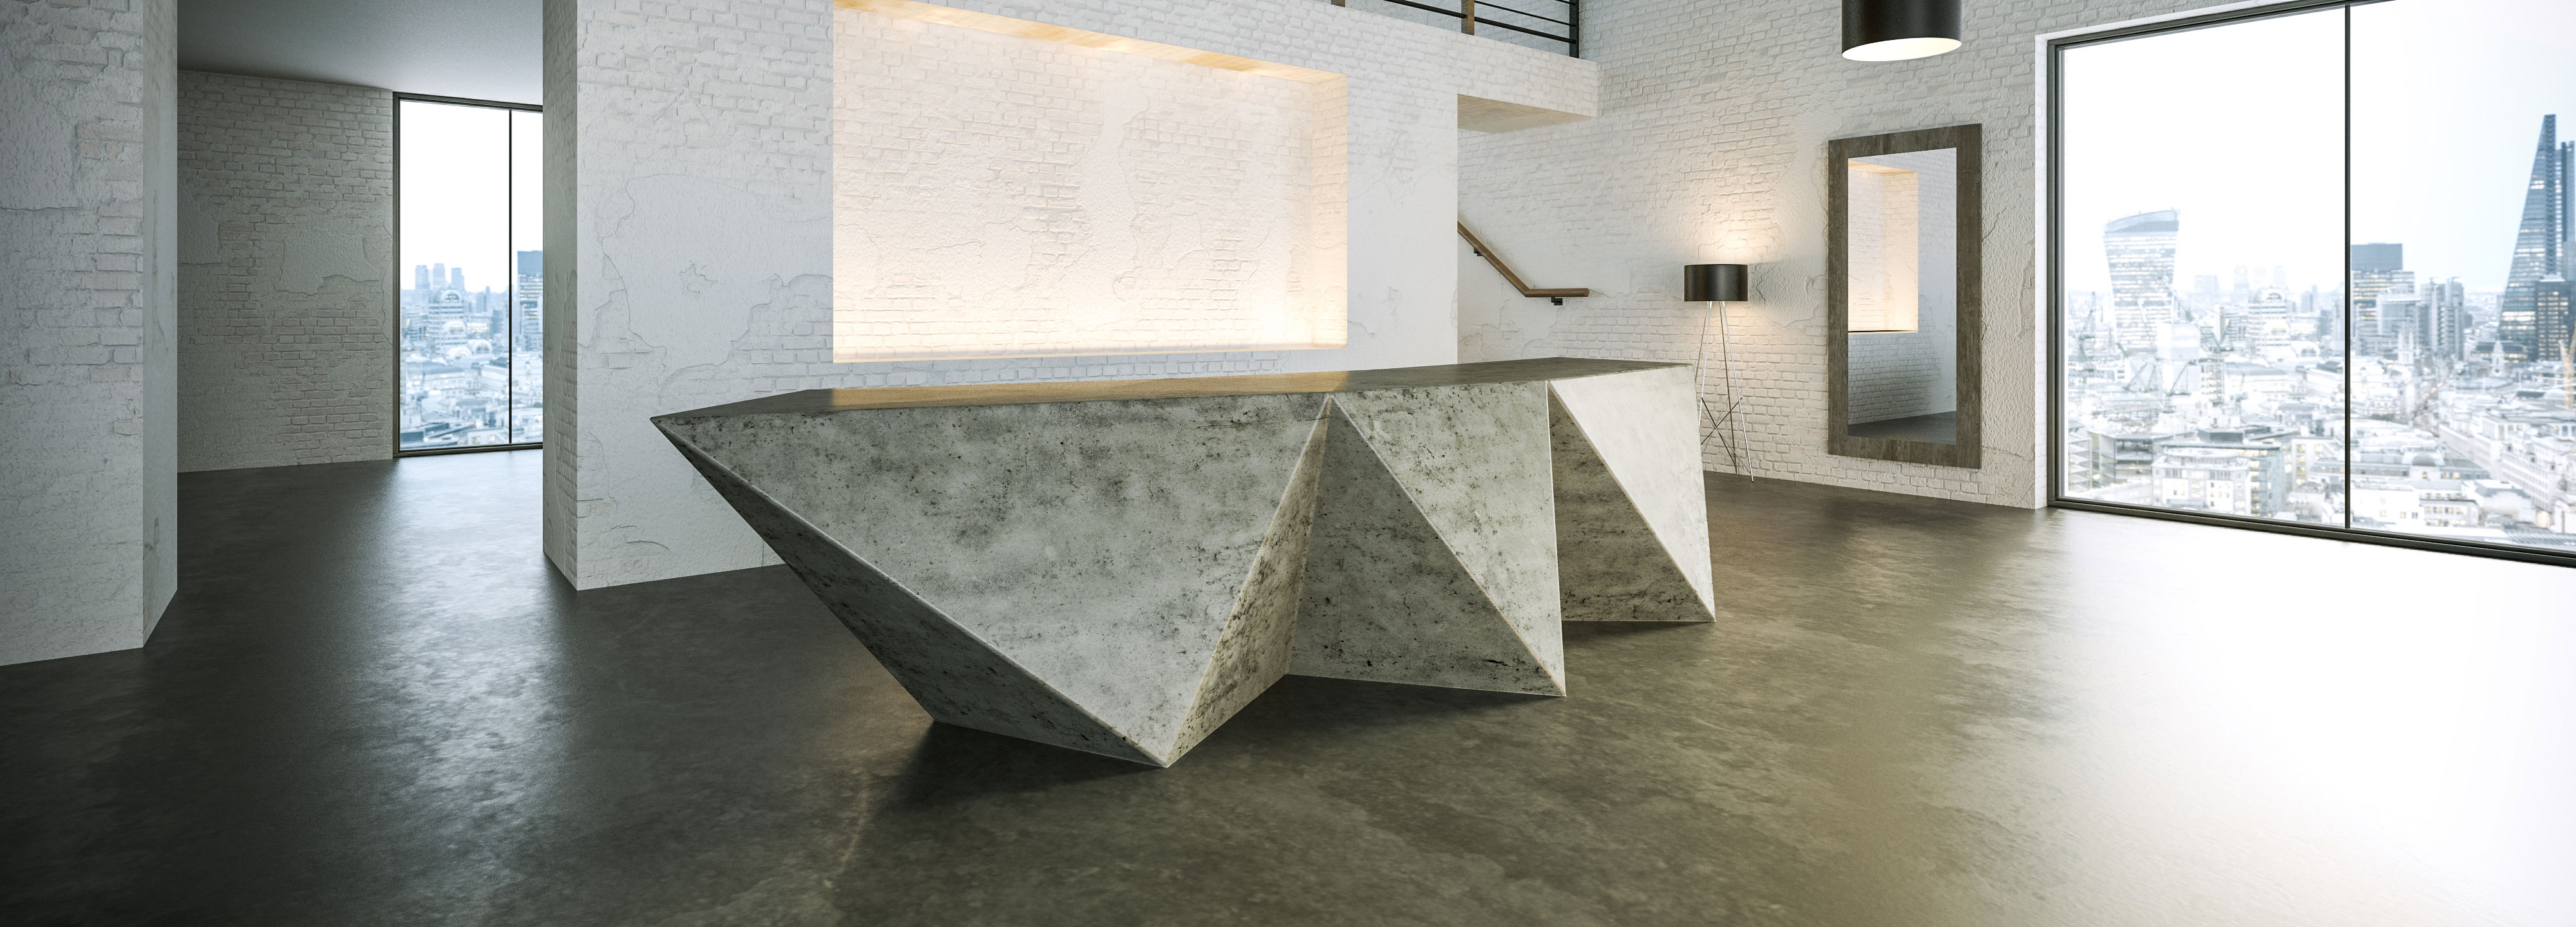 Concas Bespoke Concrete Furniture Polished Concrete Ireland Concrete Furniture Ireland